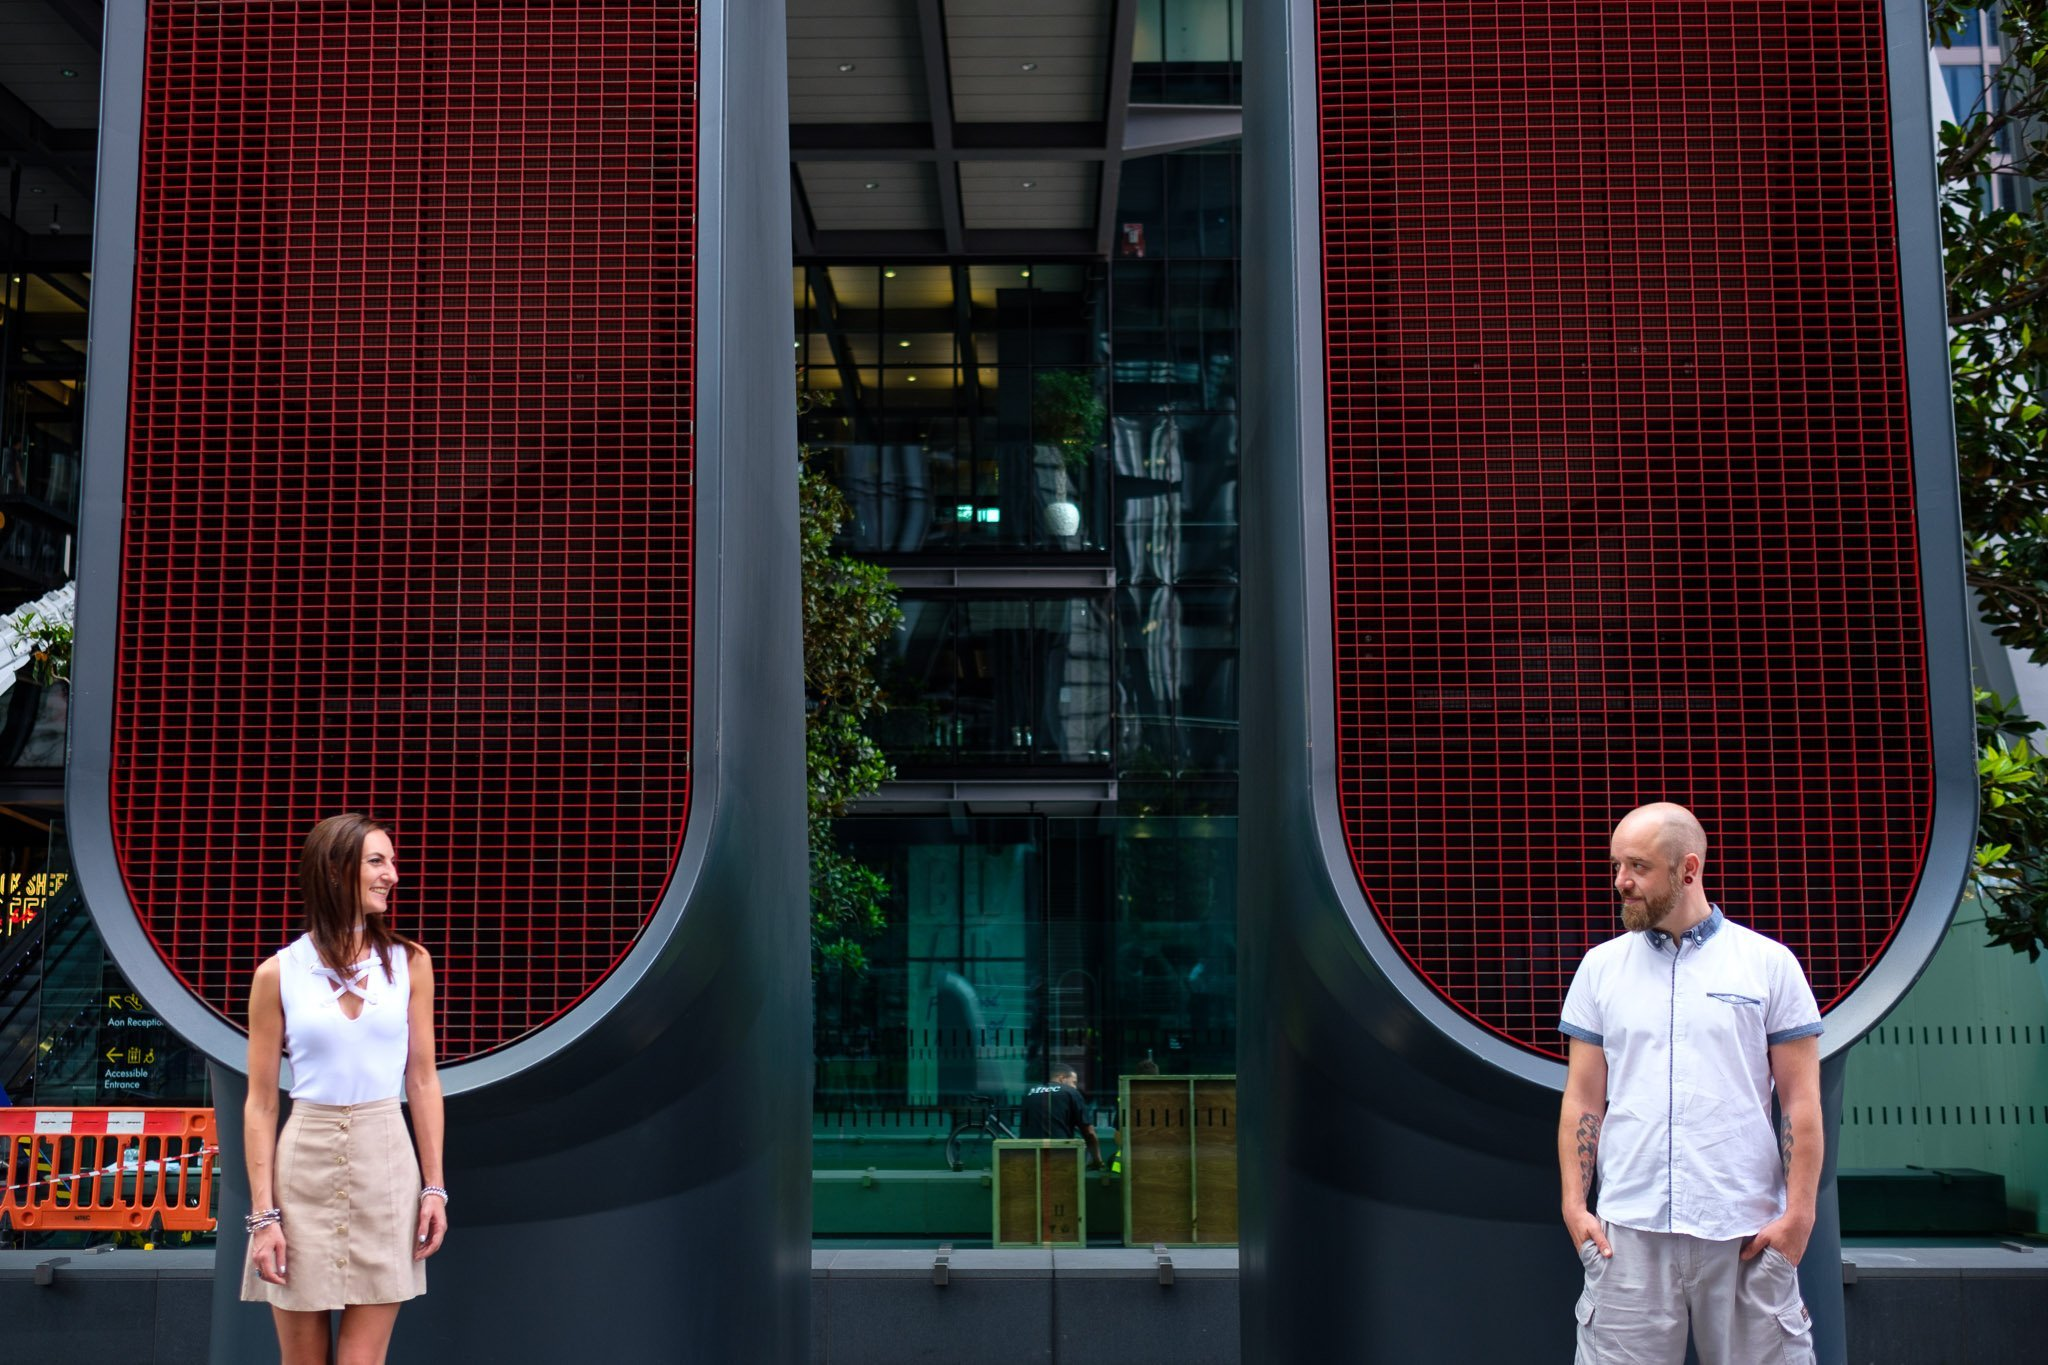 Engagement portrait of couple with abstract background London